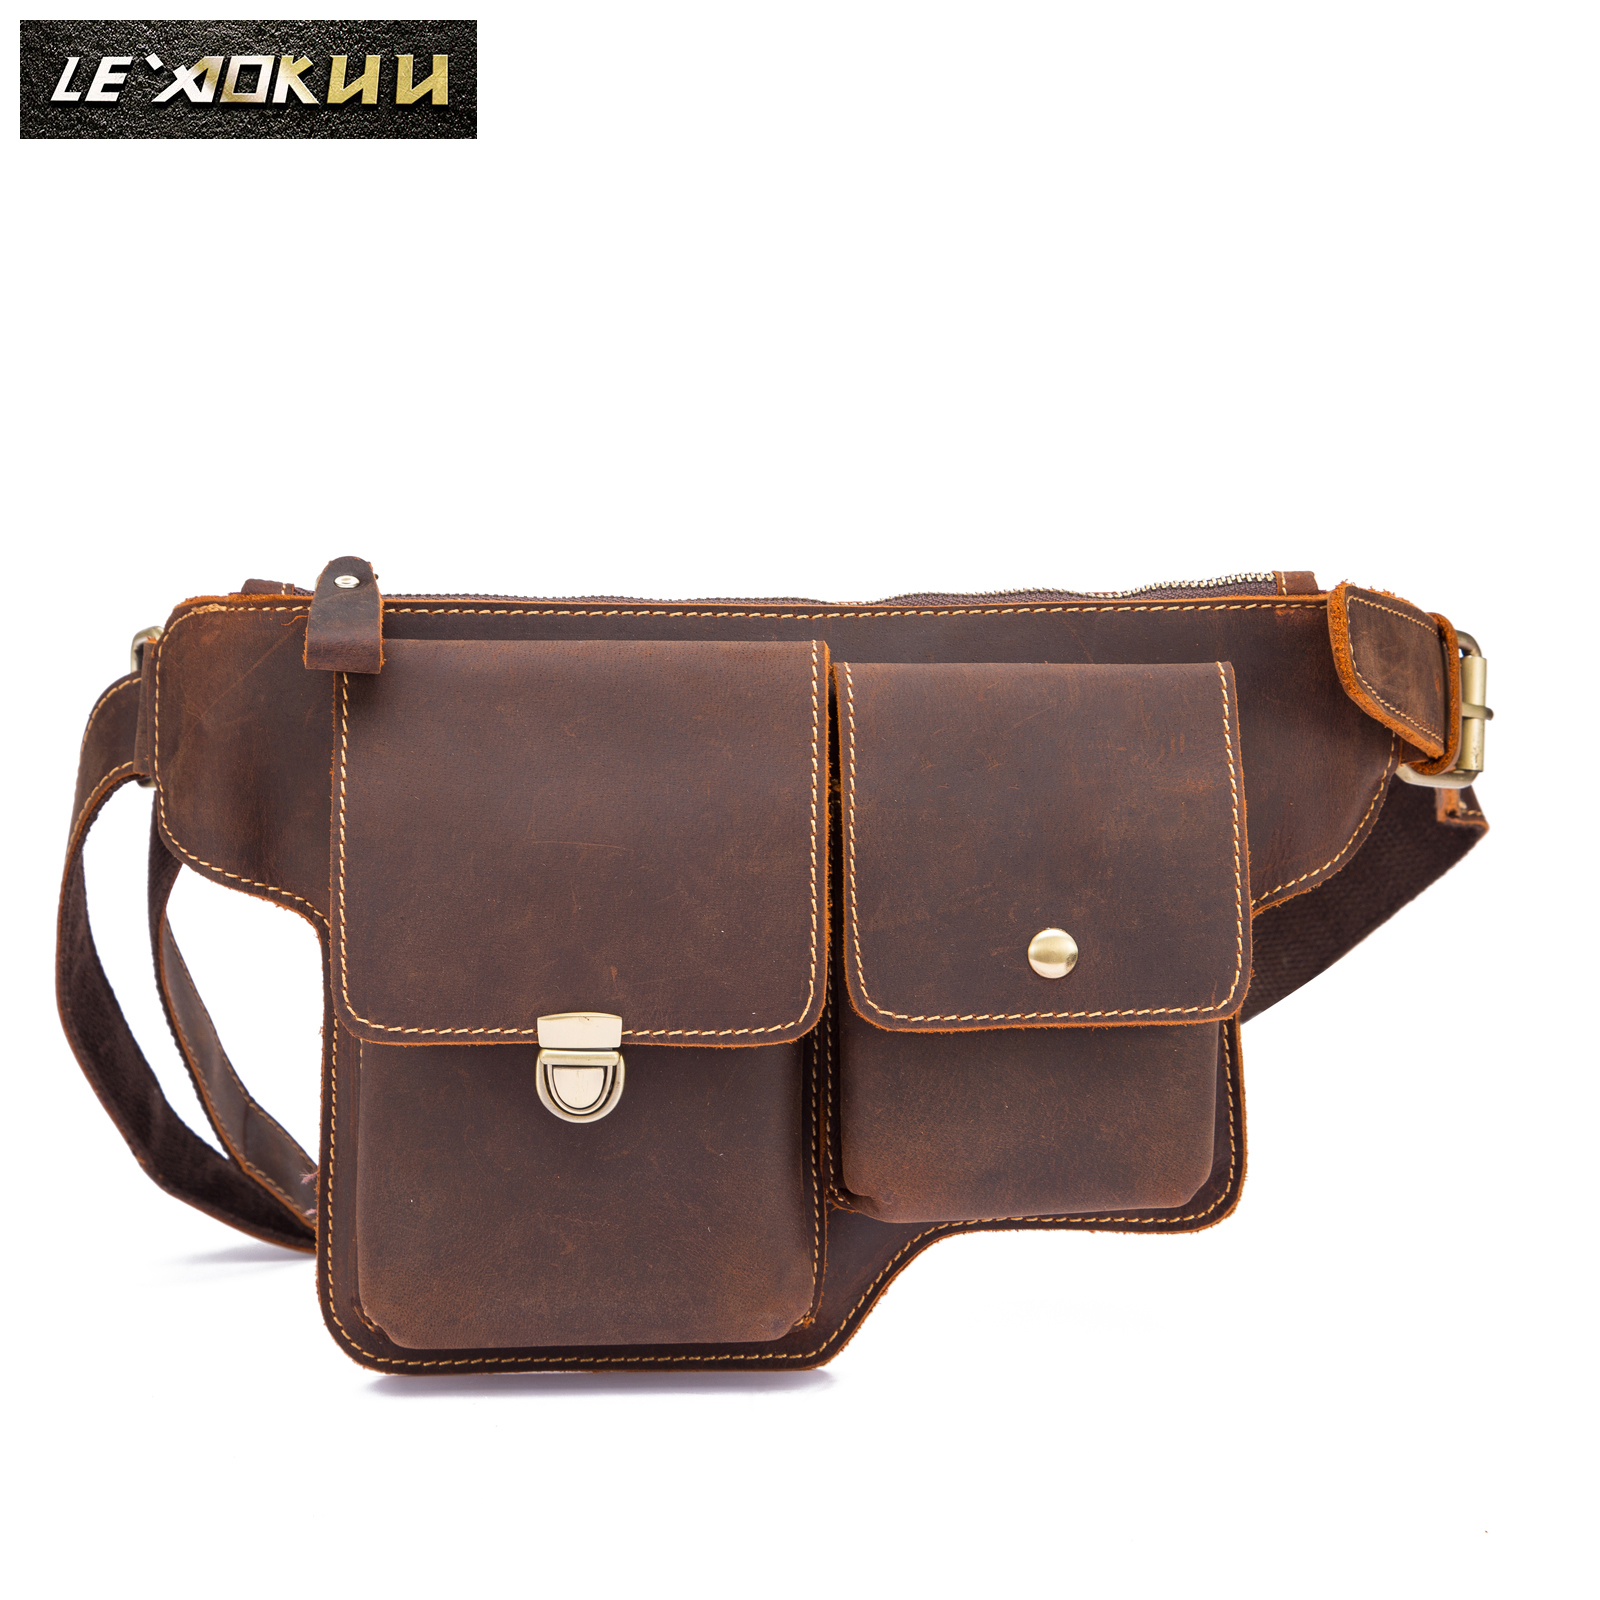 Fashion Original Leather Male Crossbody Sling Bag Design Casual Travel Phone Case Pouch Travel Fanny Waist Belt Bag Men 3015Fashion Original Leather Male Crossbody Sling Bag Design Casual Travel Phone Case Pouch Travel Fanny Waist Belt Bag Men 3015